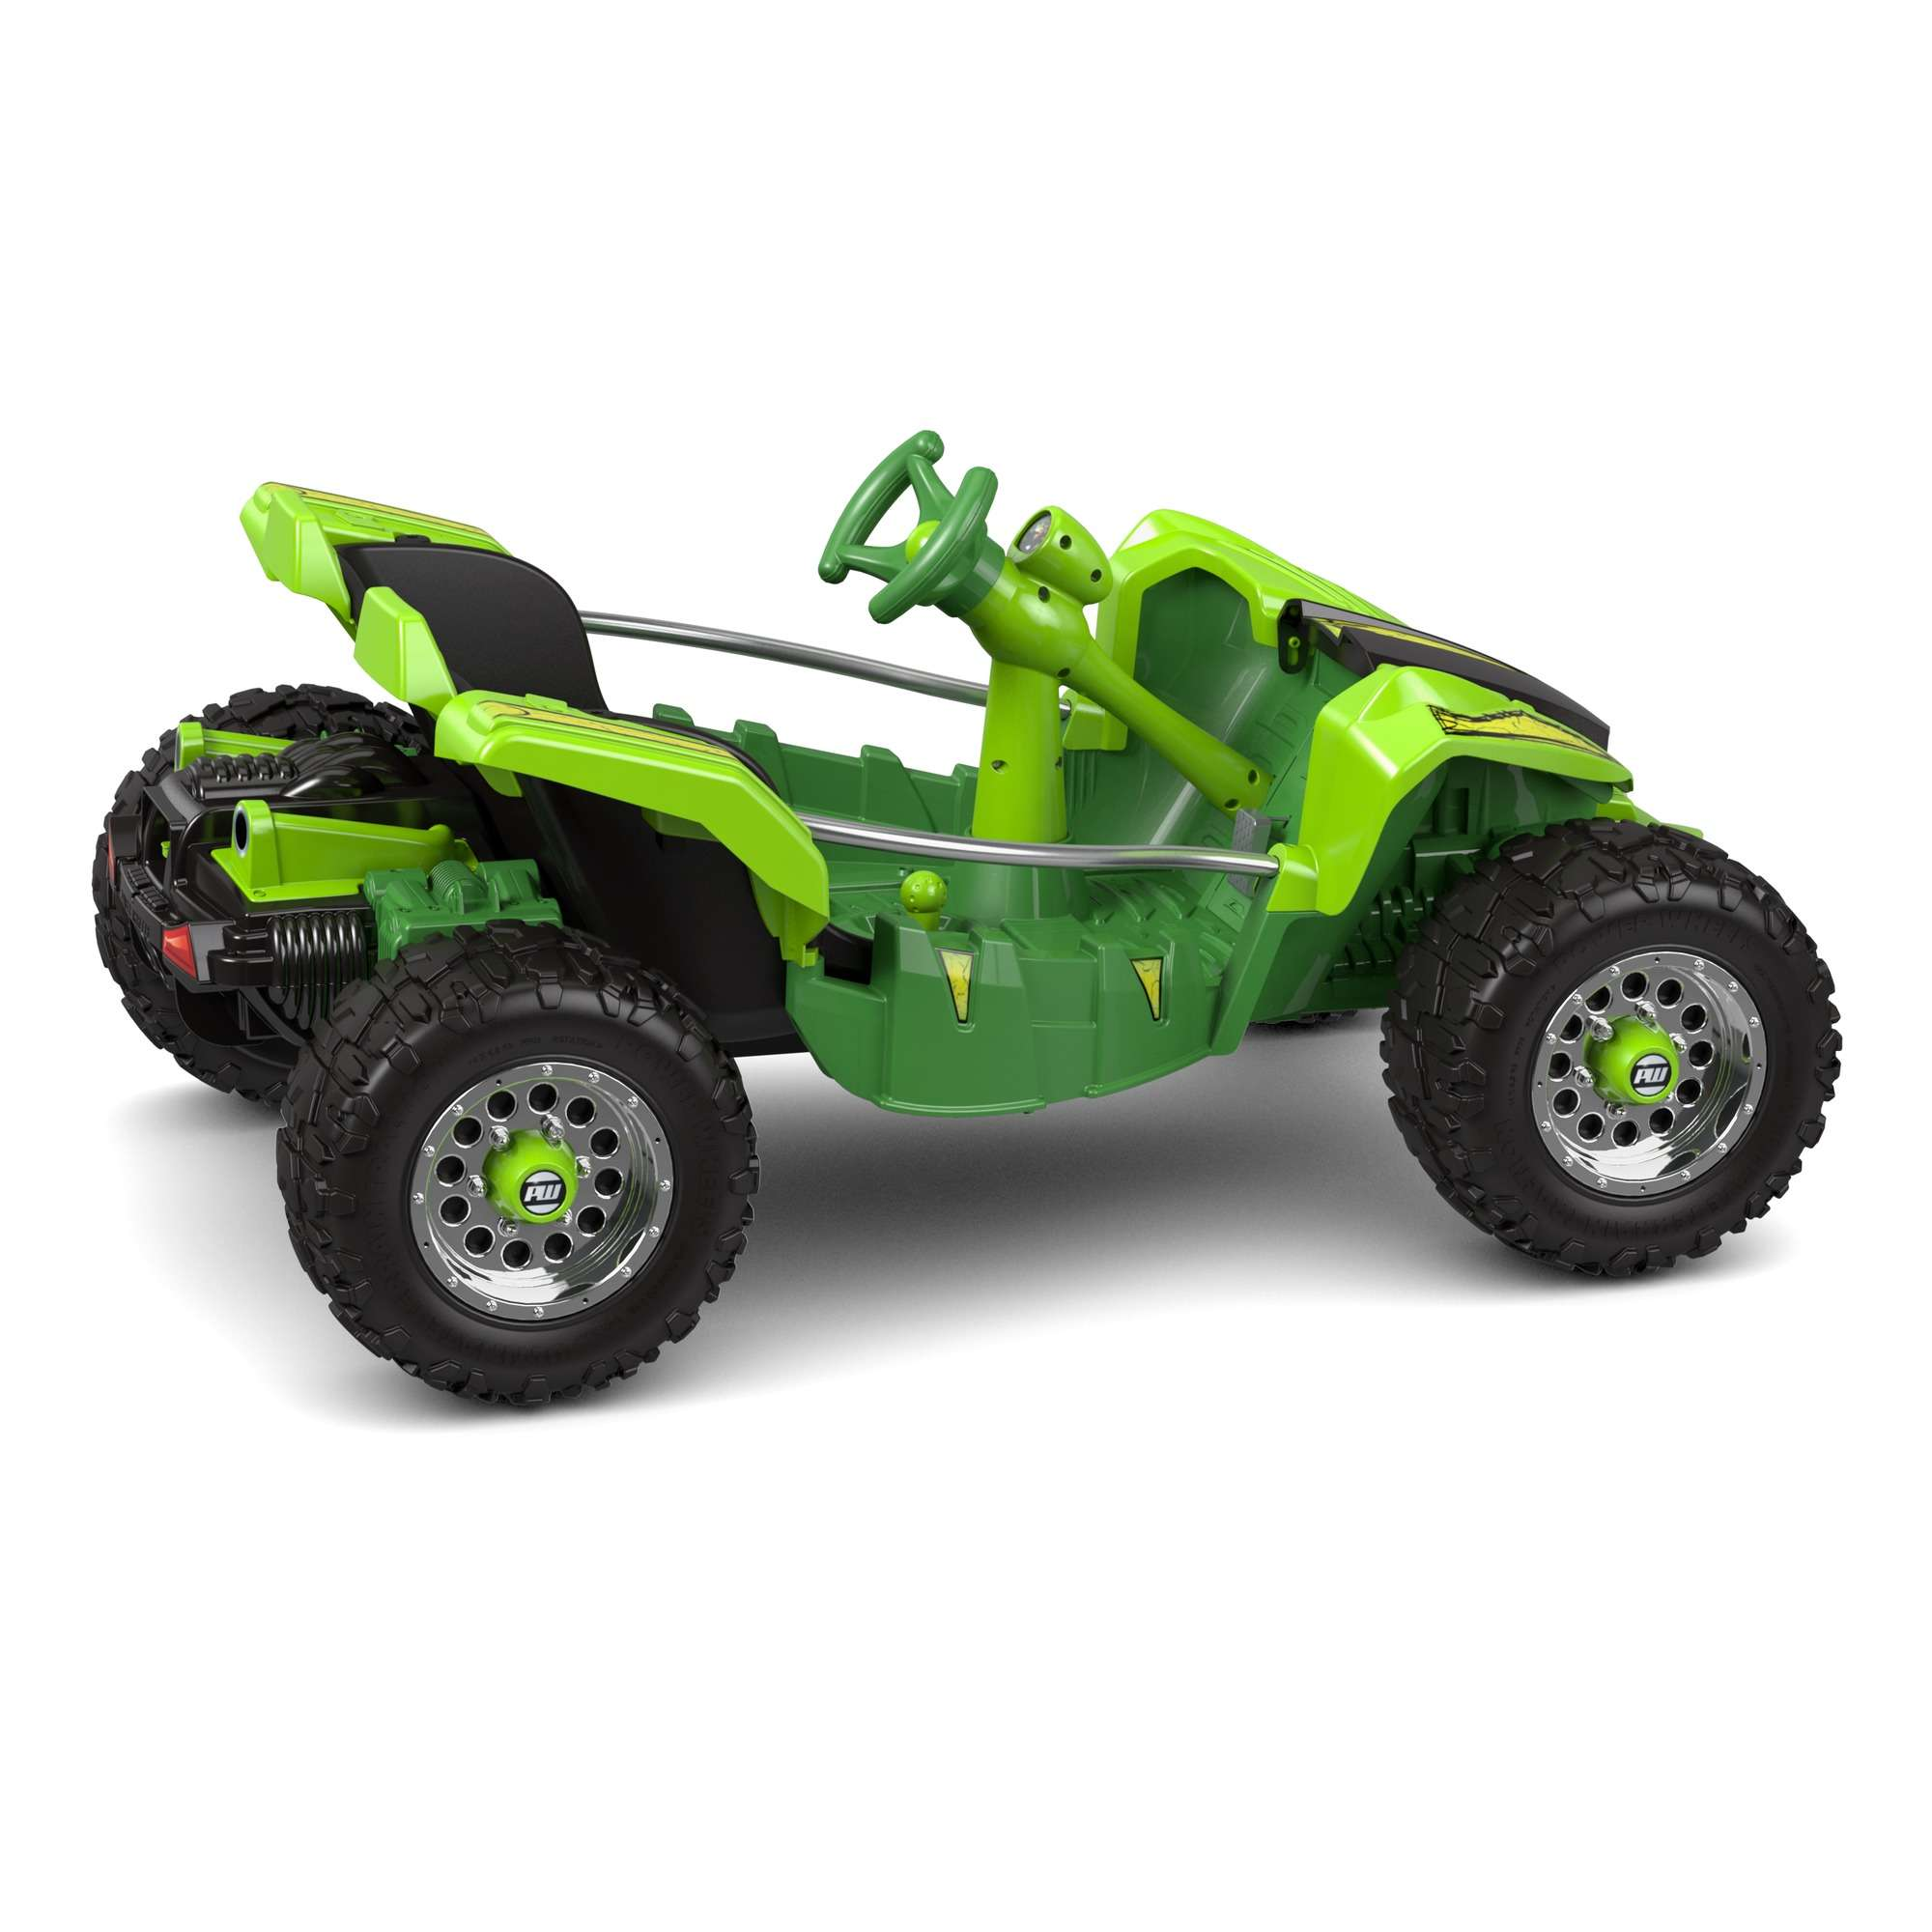 2defee56 b796 4bd4 852c 3a717b33816e_1.19d80fe48d748501700586dbc53e2746 power wheels dune racer extreme 12 volt battery powered ride on  at aneh.co